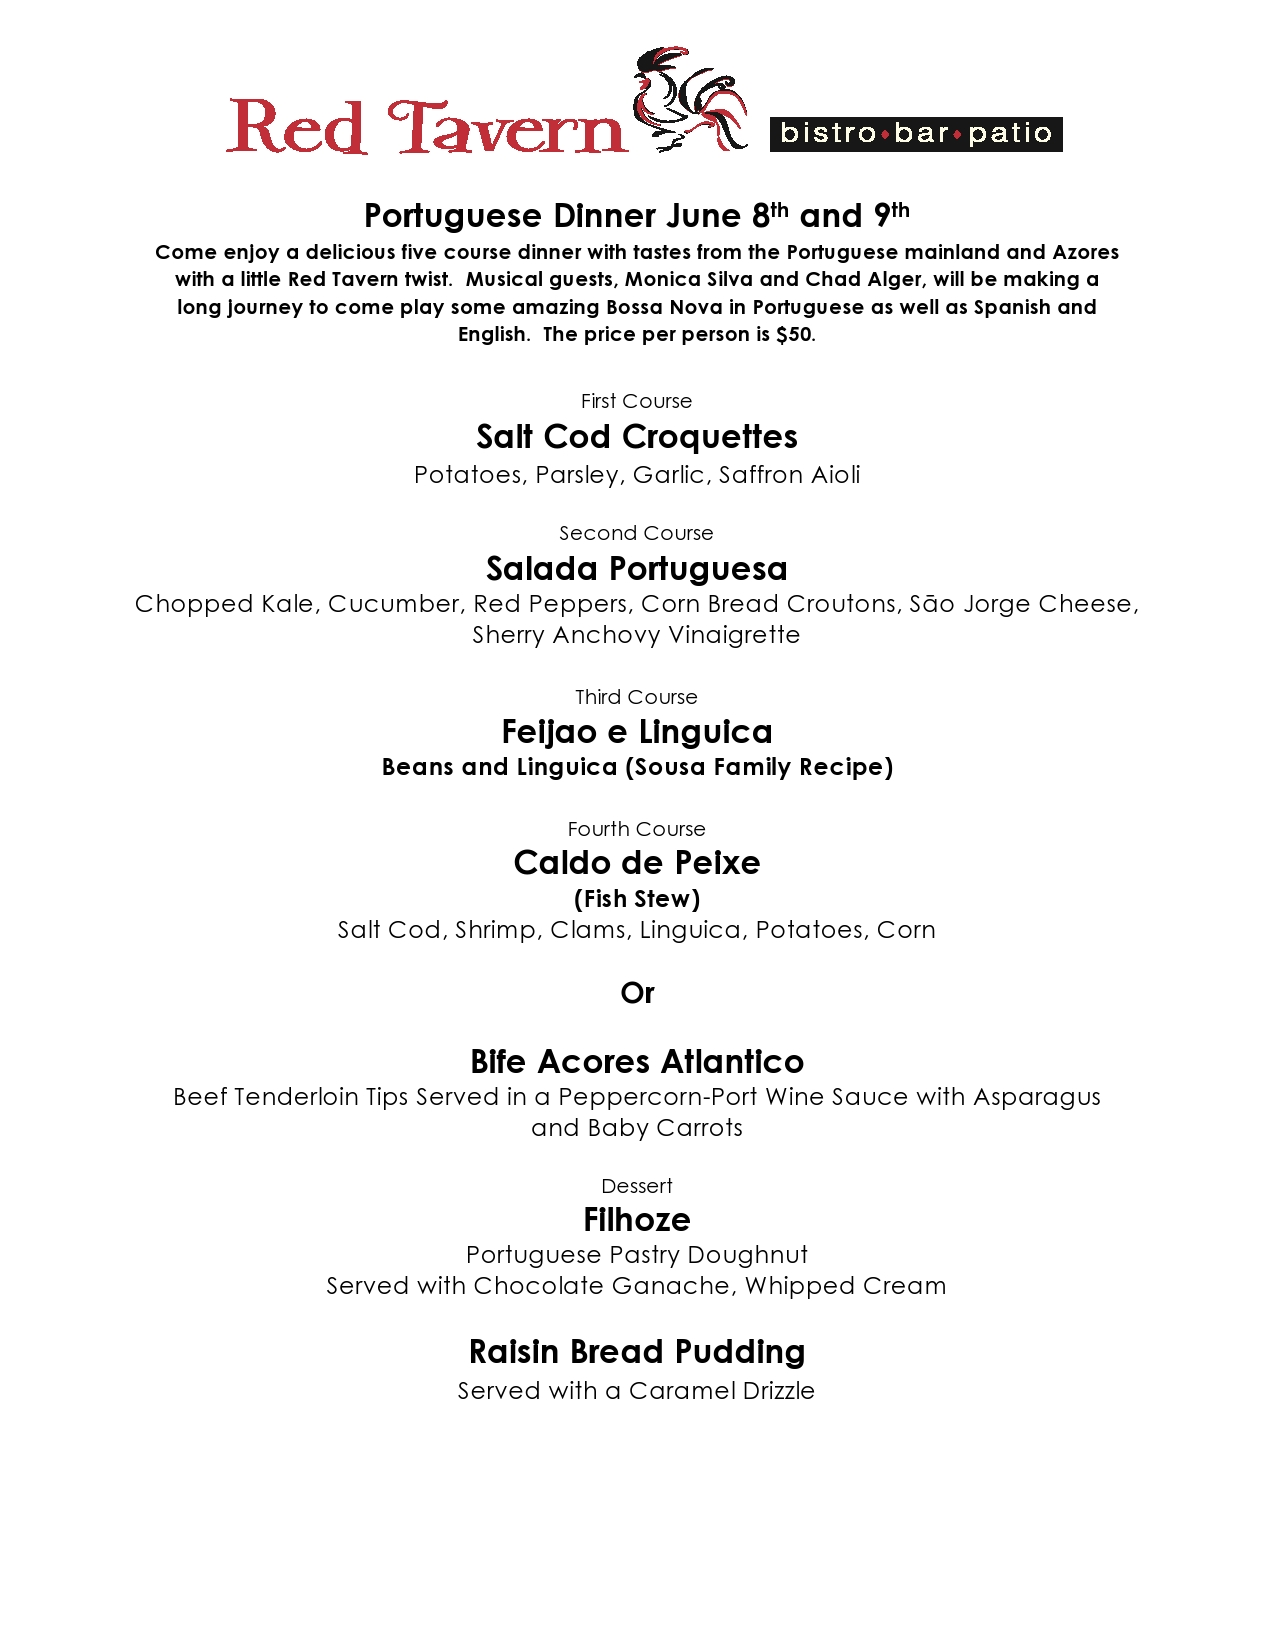 Red Tavern upcoming event: Portuguese Dinner with Live Music – June 8th and 9th, 2018